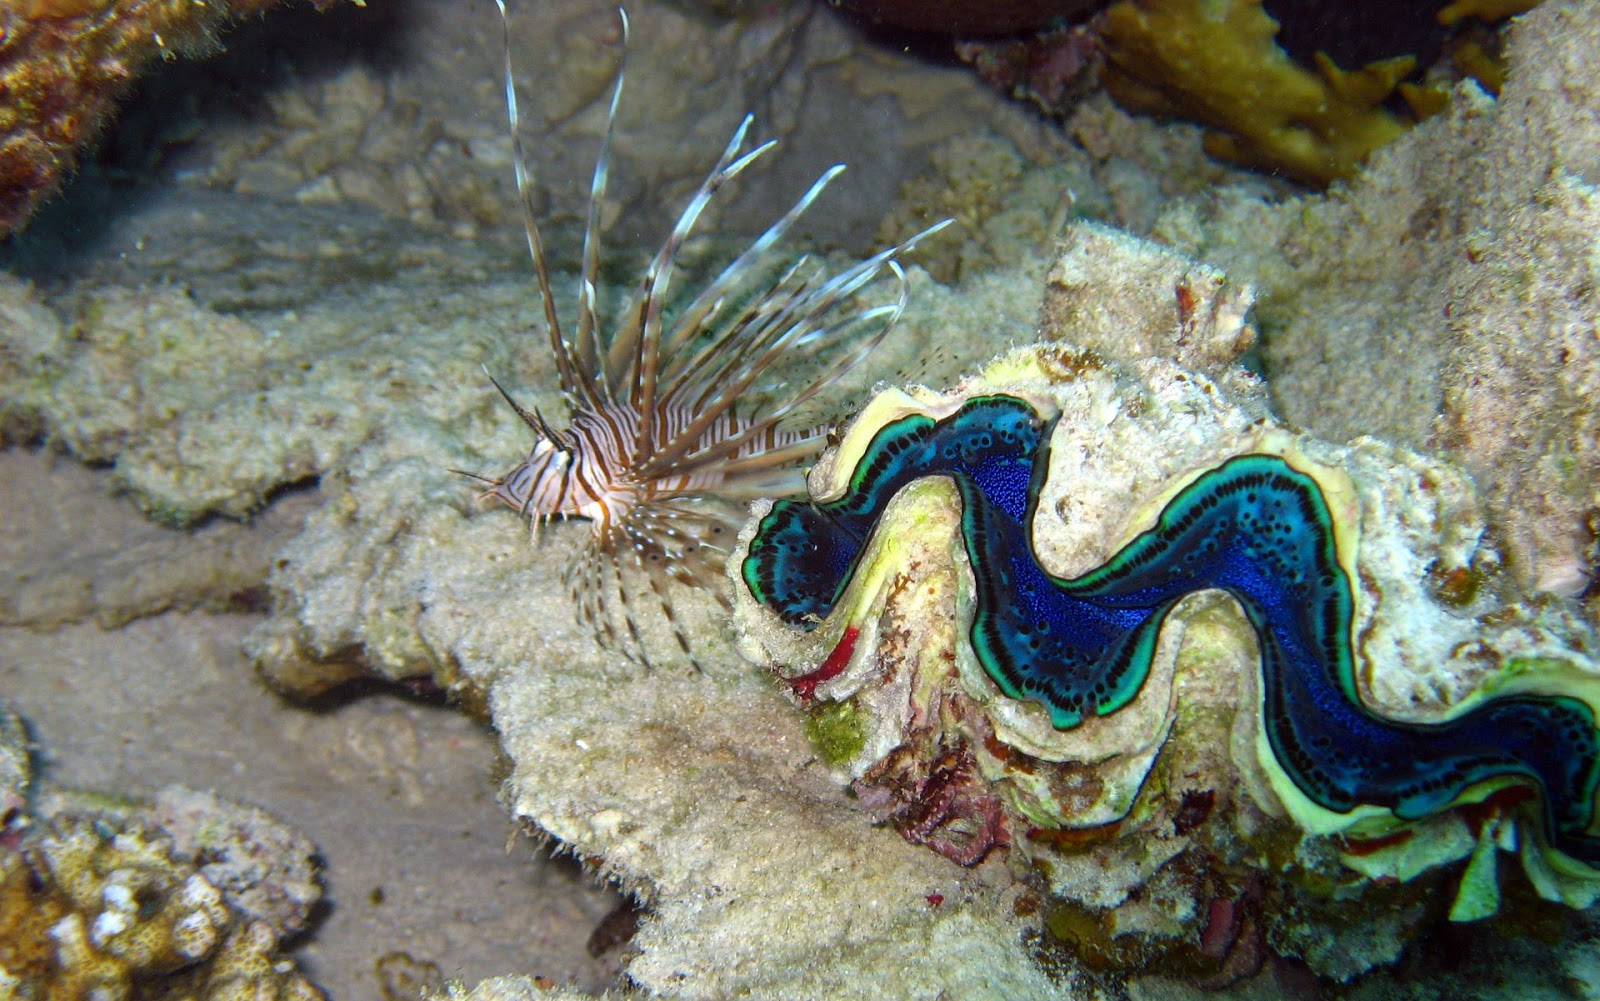 http://3.bp.blogspot.com/-z8HE37GNATk/UH1HmYCwIQI/AAAAAAAAEXw/HIyM4GVvE7A/s1600/lion-fish-and-clamshell-underwater-ocean-wallpaper-1920x1200-240.jpg